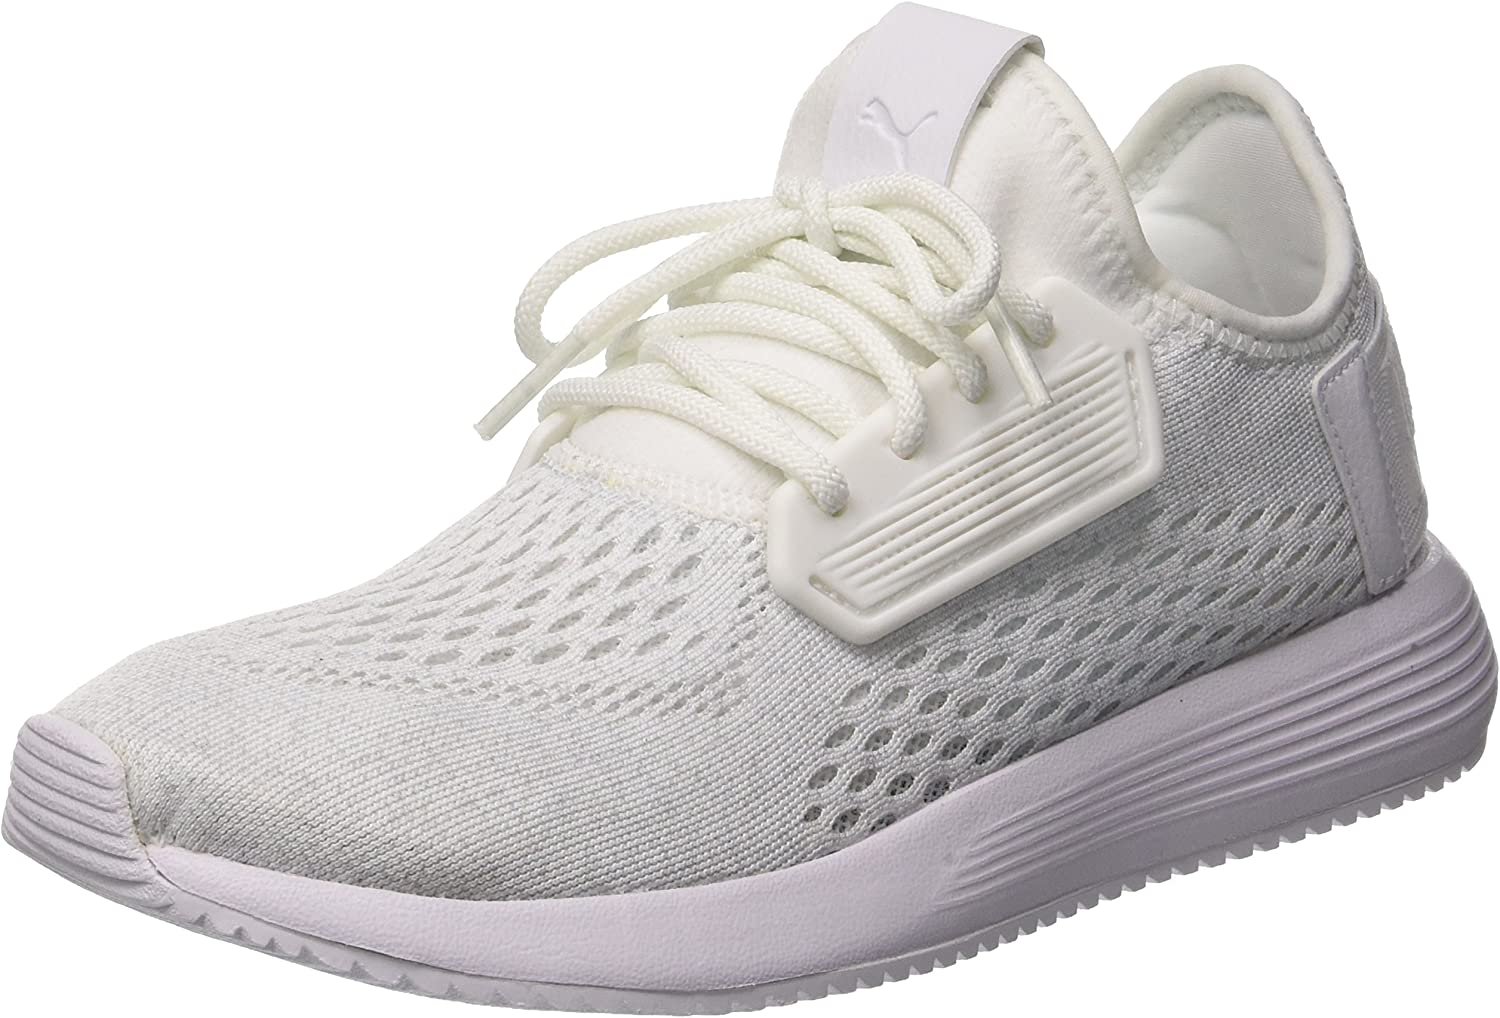 PUMA Unisex Adults' Uprise Mesh Low-Top Sneakers